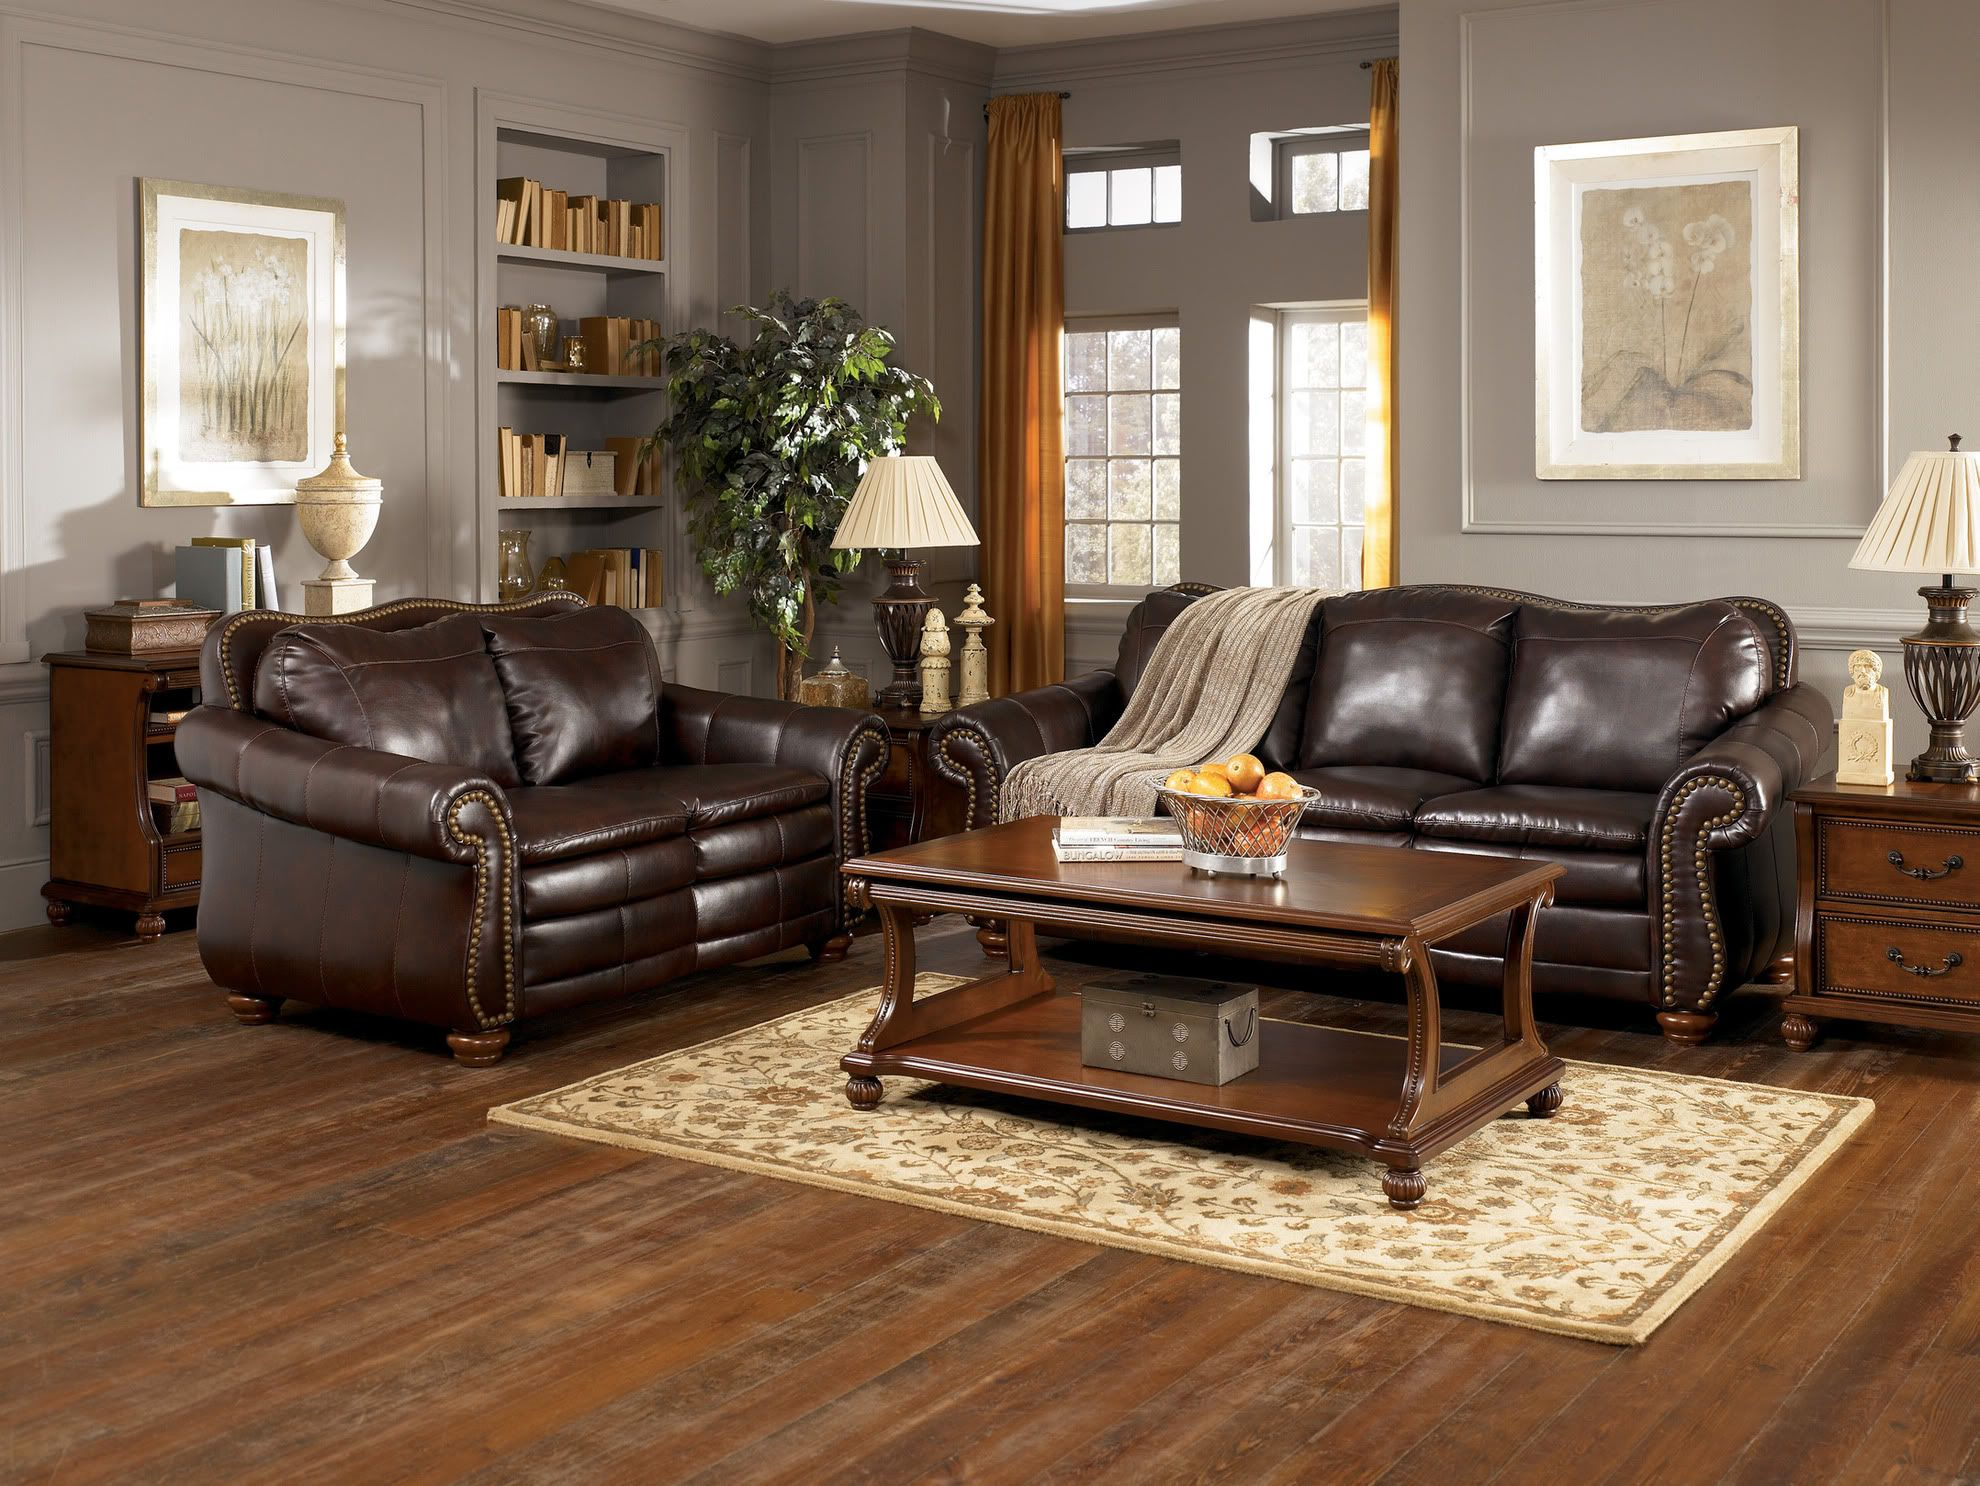 Likeness Of Rustic Living Room Ideas